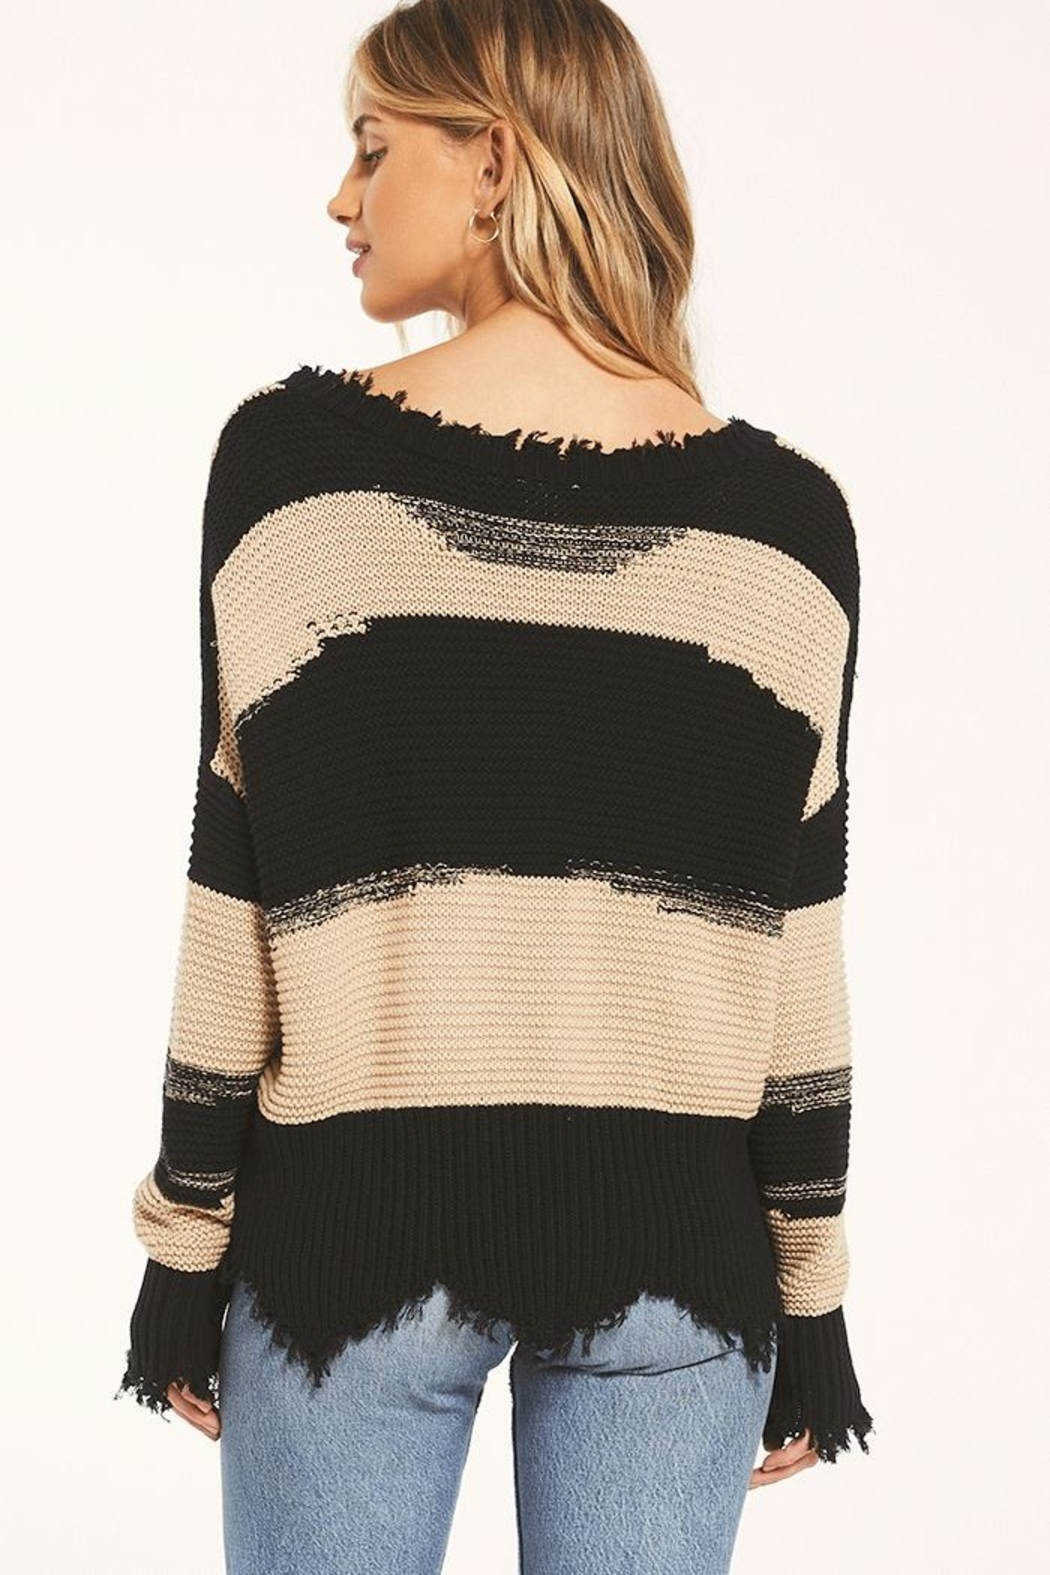 z supply White Crow Hope Sweater Tan - Front Full Image